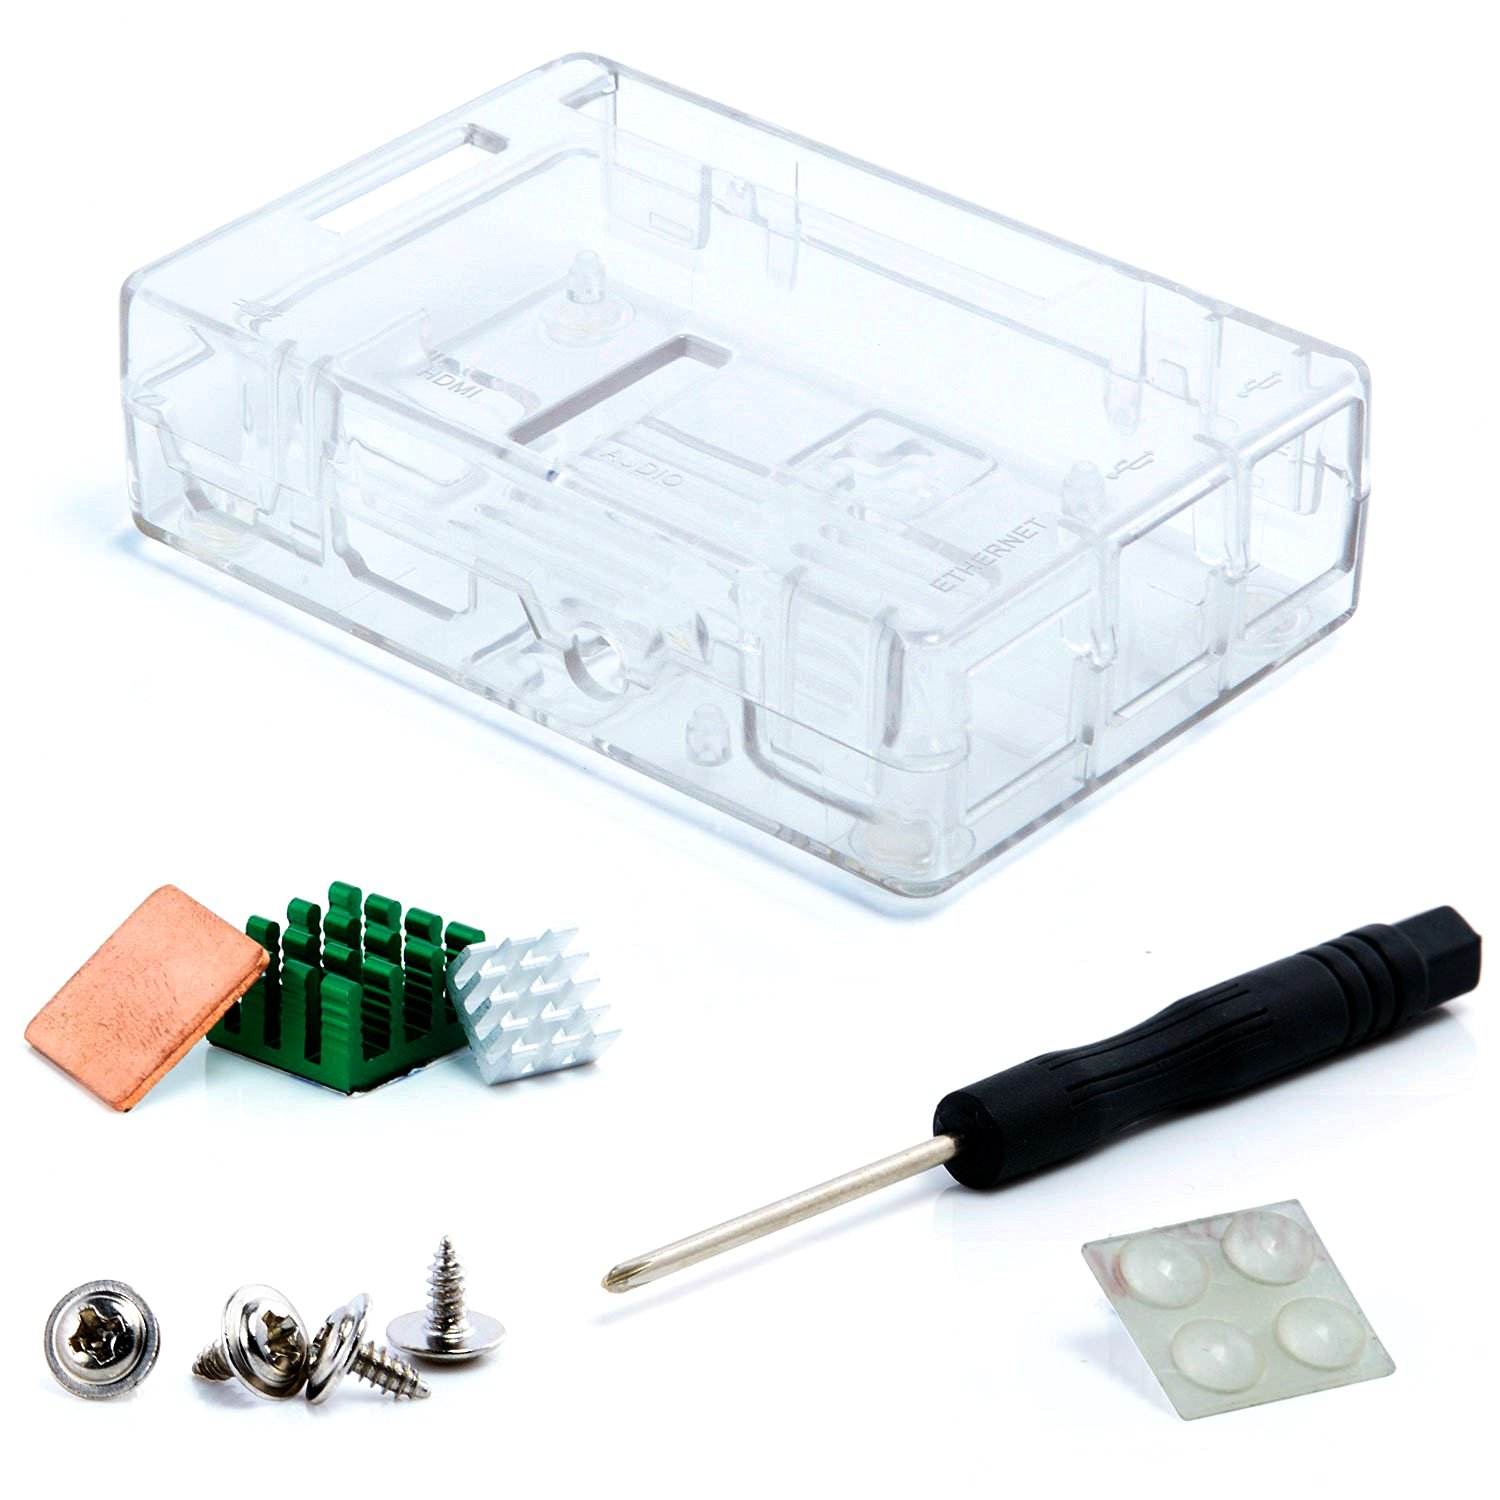 Aukru Transparente Caja para Raspberry Pi 3 Model B y Pi 2 Model B/B+